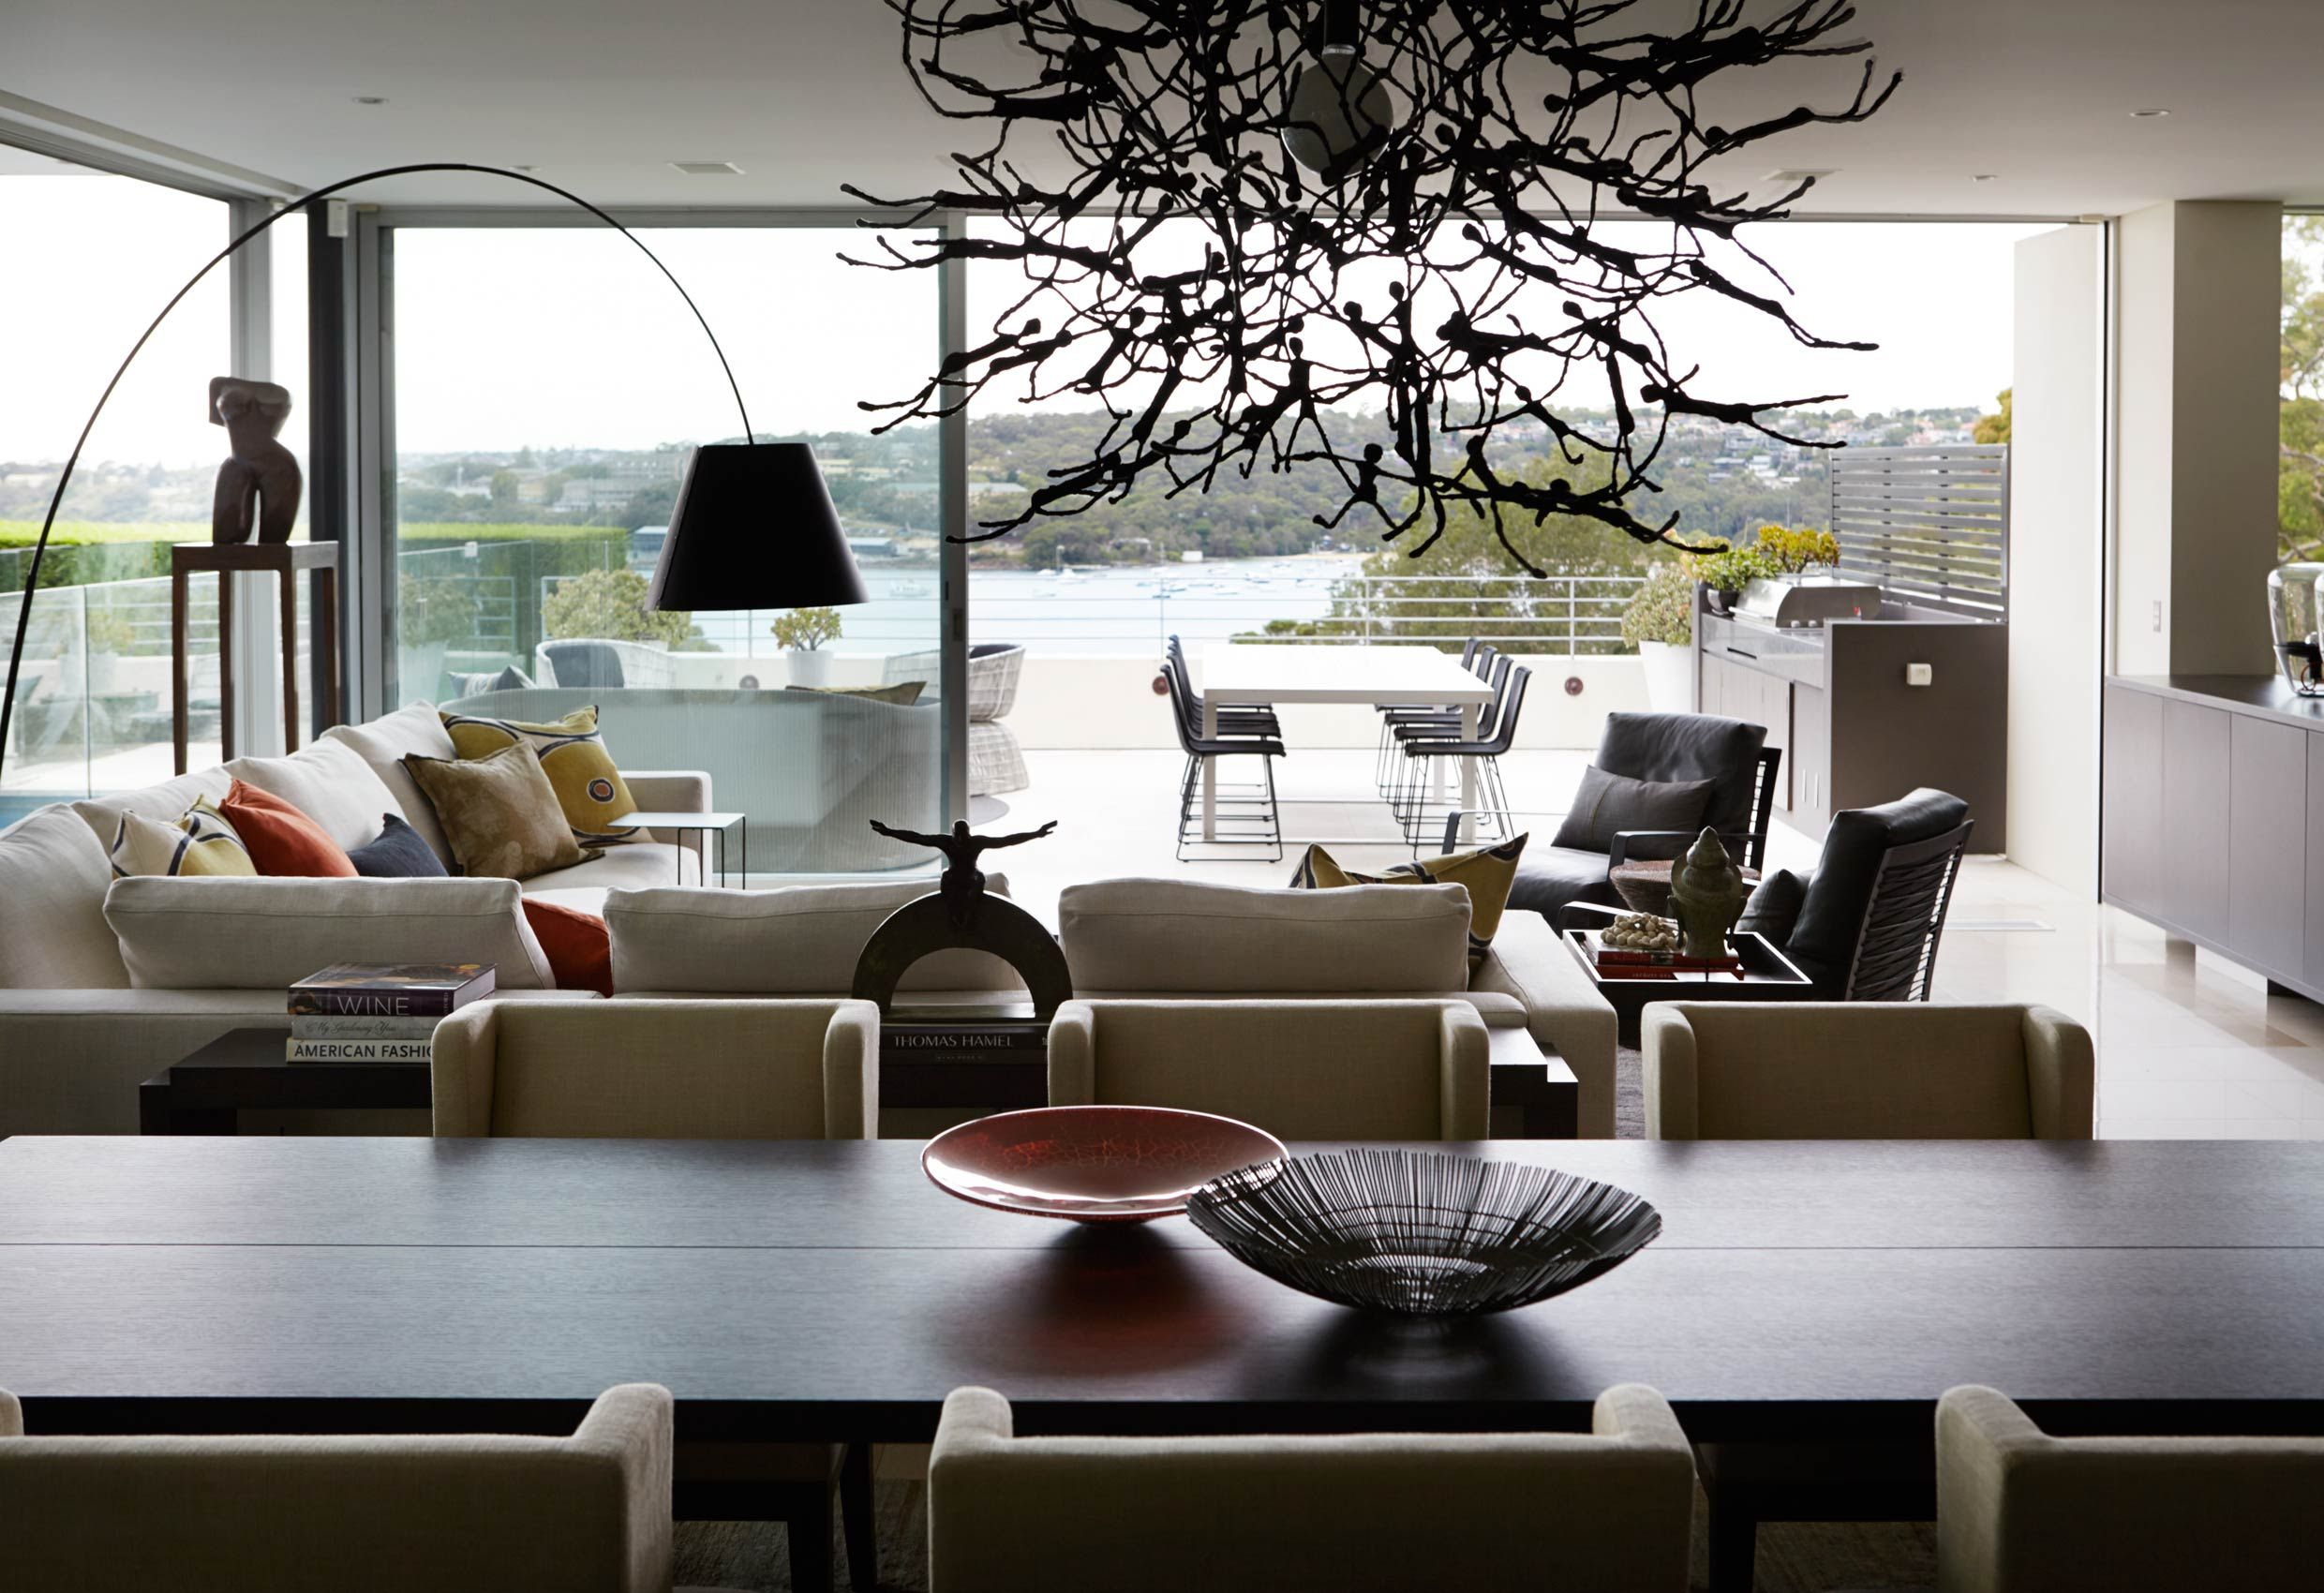 Hare Klein introduced contemporary new furnishings